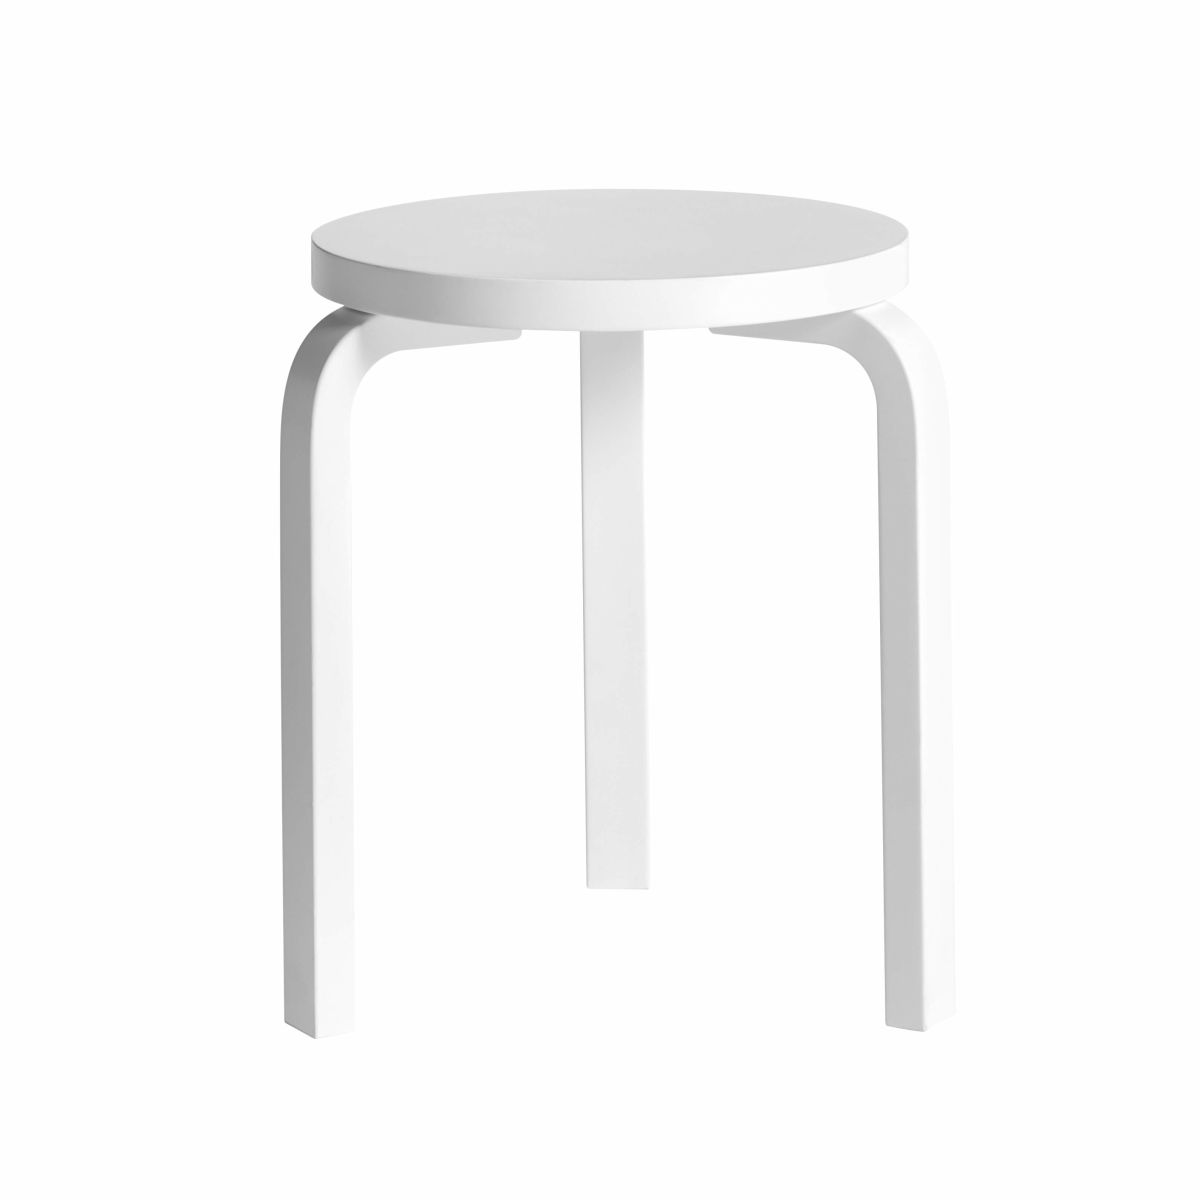 Peachy Artek Stool 60 Creativecarmelina Interior Chair Design Creativecarmelinacom